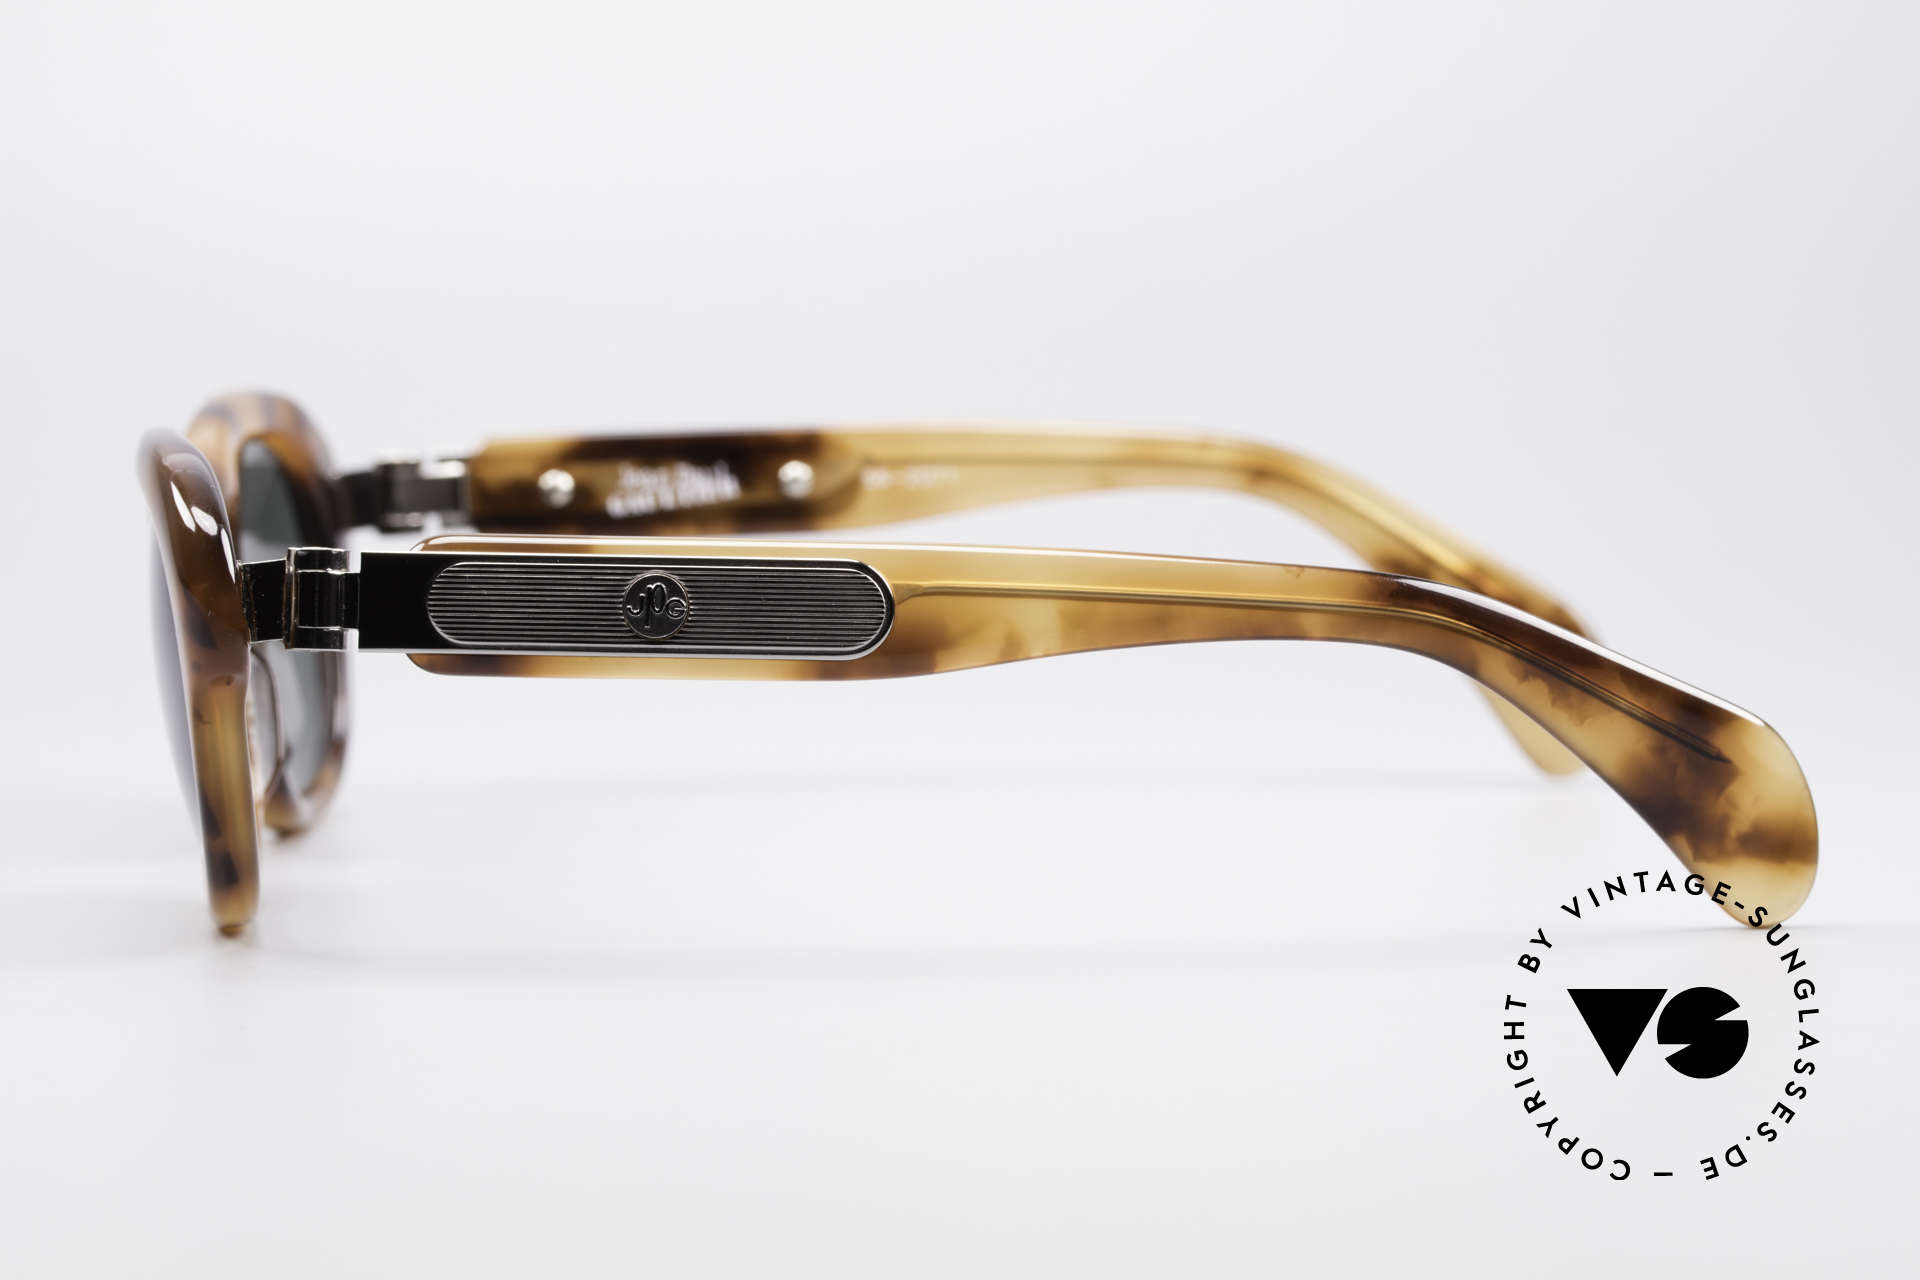 Jean Paul Gaultier 56-2071 No Retro True Vintage Frame, new old stock (like all our vintage JP Gaultier shades), Made for Women